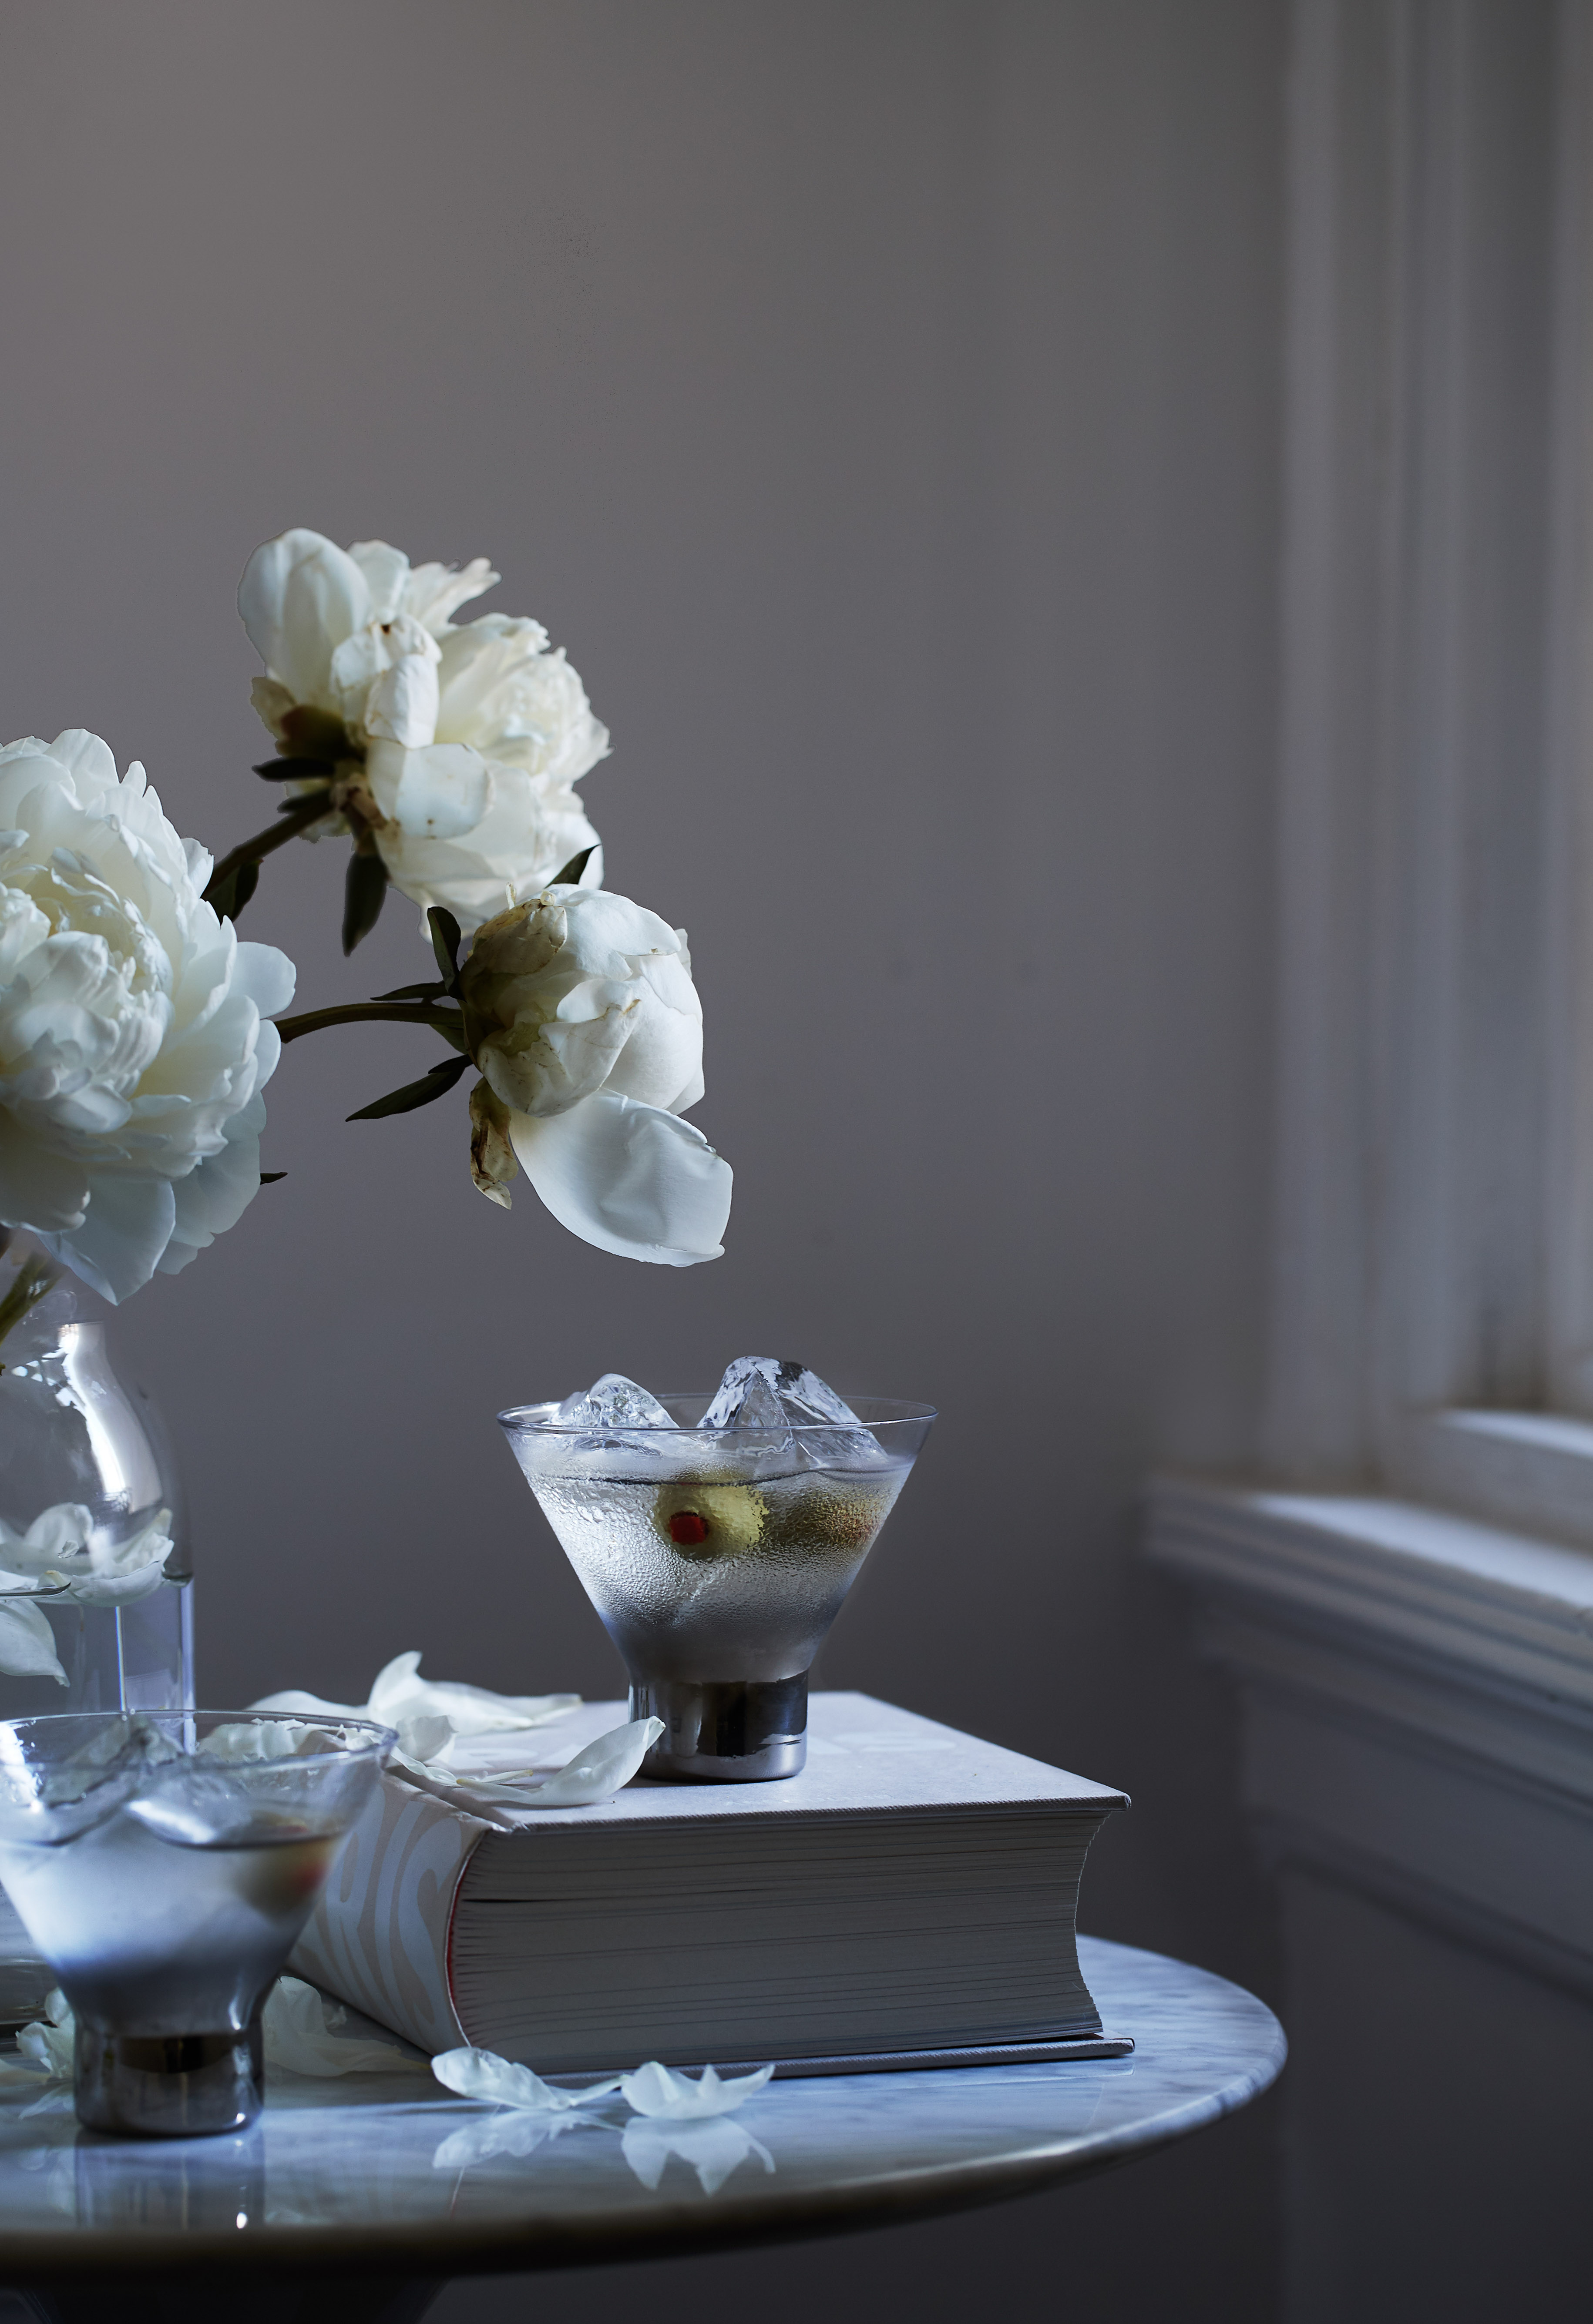 food stylist in San Francisco - Vodka on the rocks with peonies in Paris, photographed by Laurie Frankel photographer